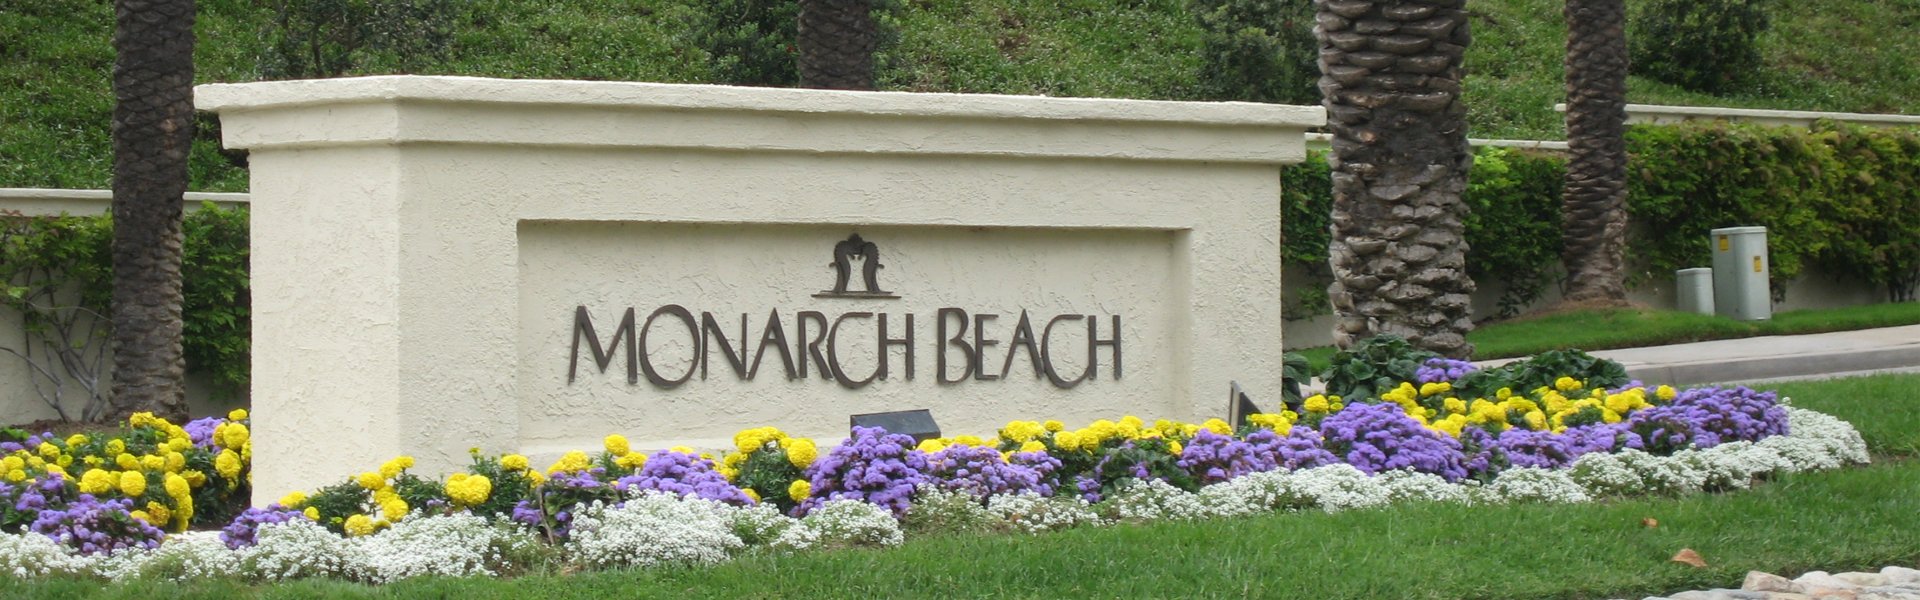 Welcome to Monarch Beach Master's Community Website!